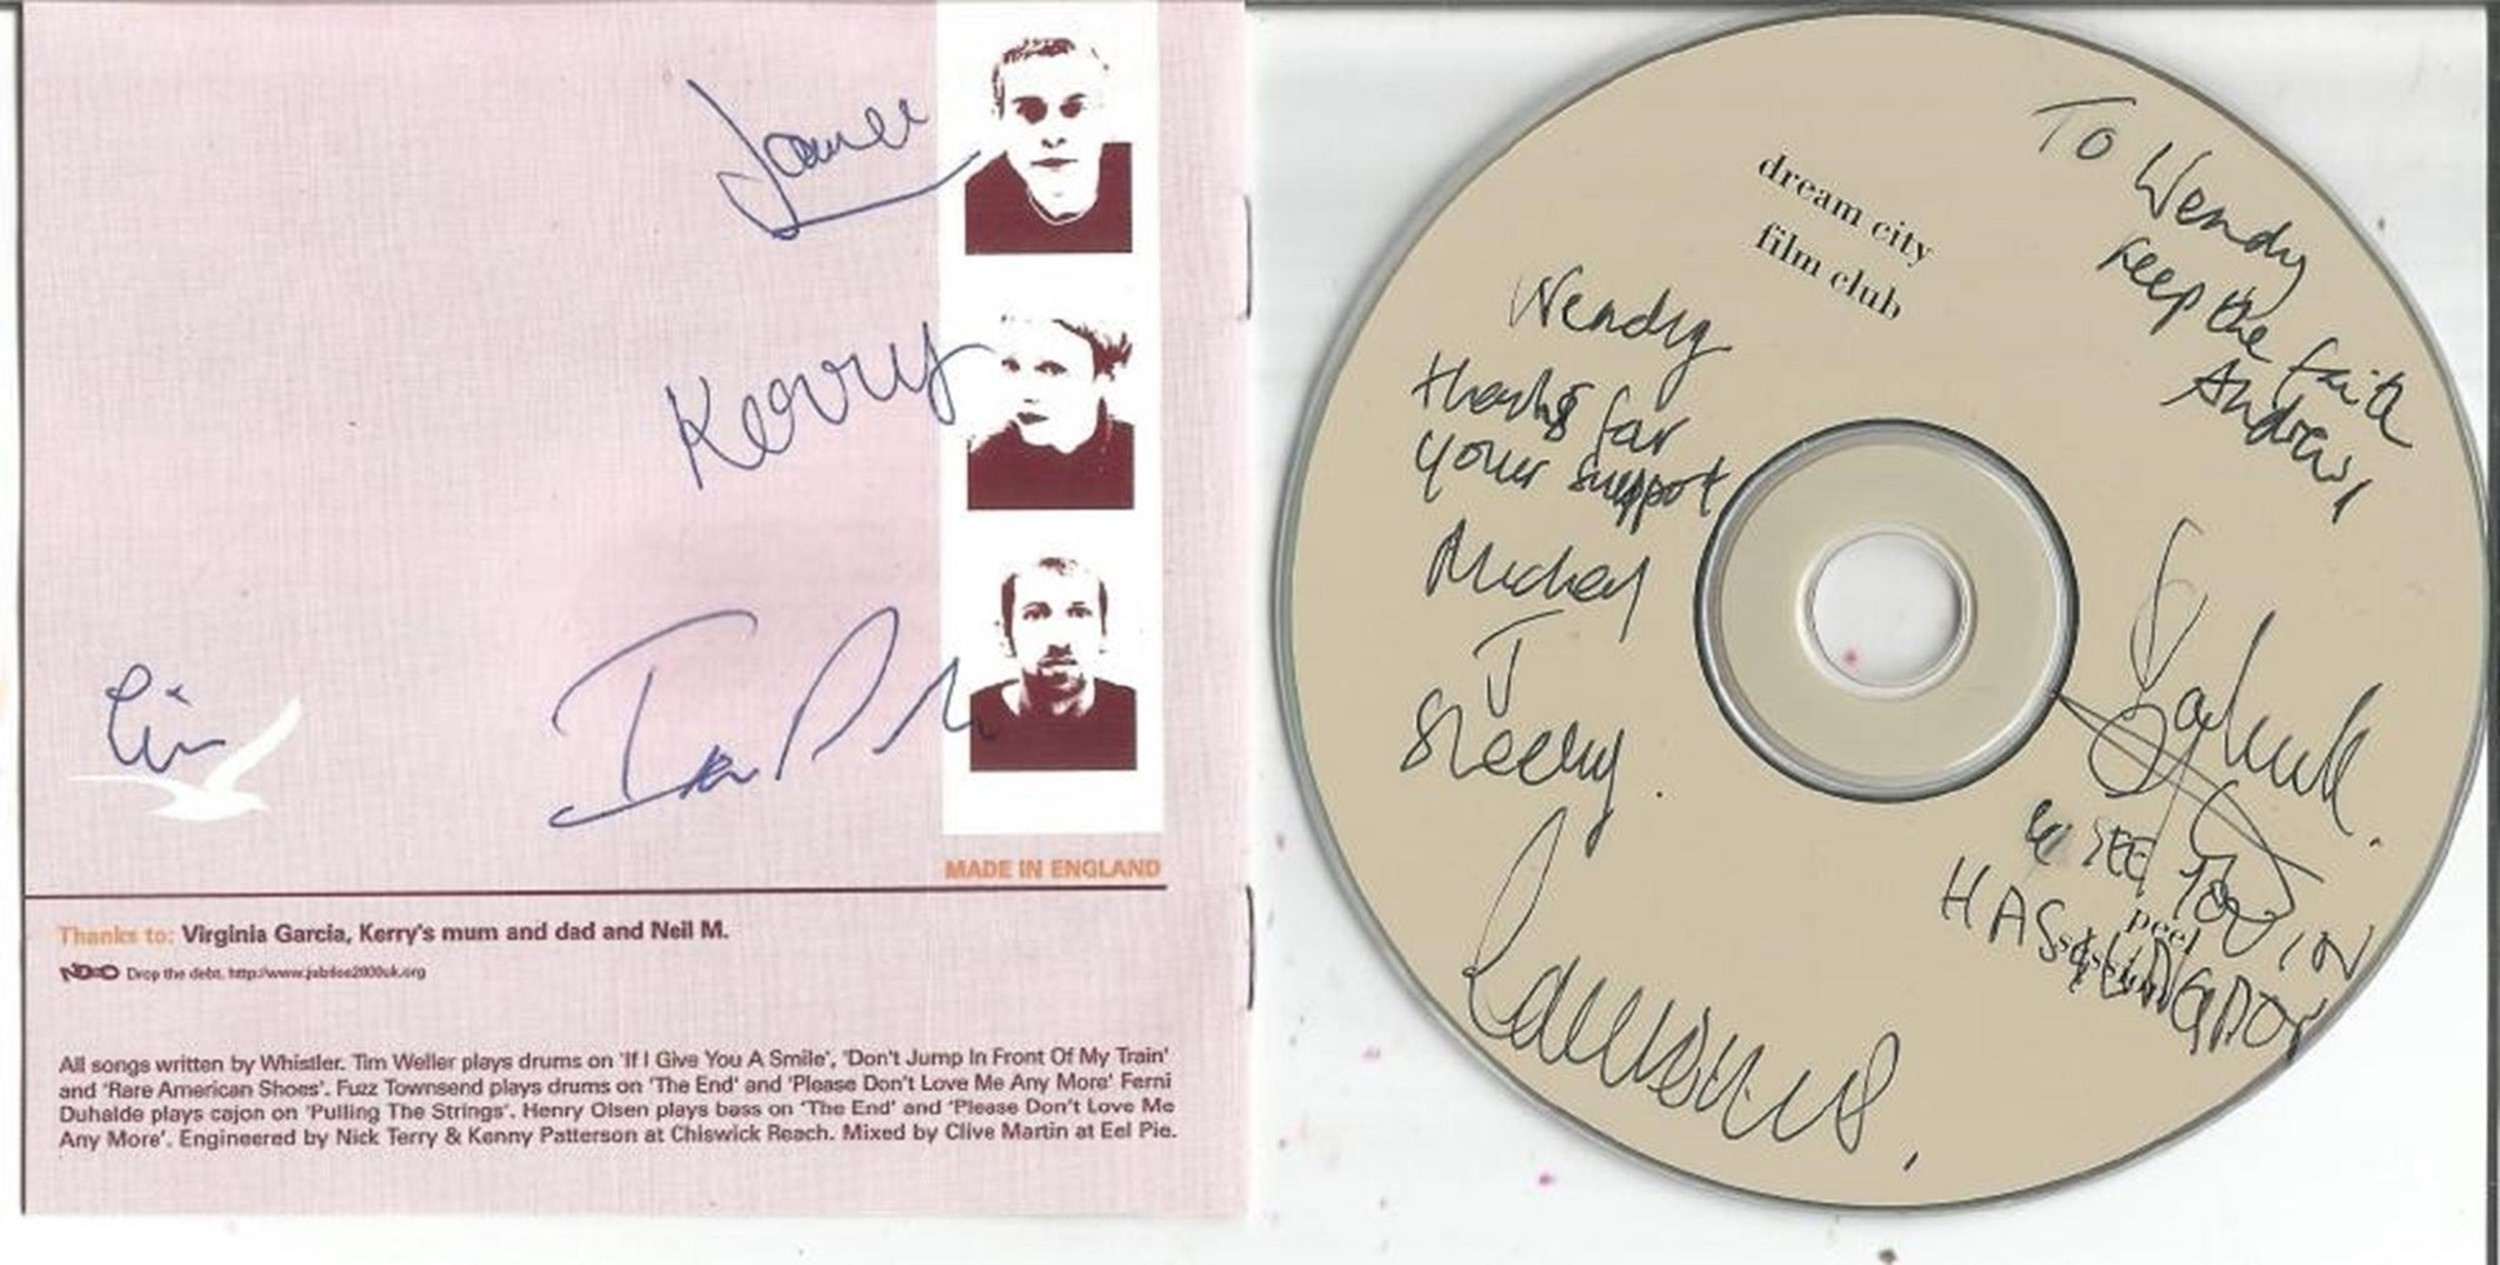 6 Signed CDs Including Ruarri Joseph Both Sides of the Coin Disc Included, Belvedere Faded - Image 3 of 3